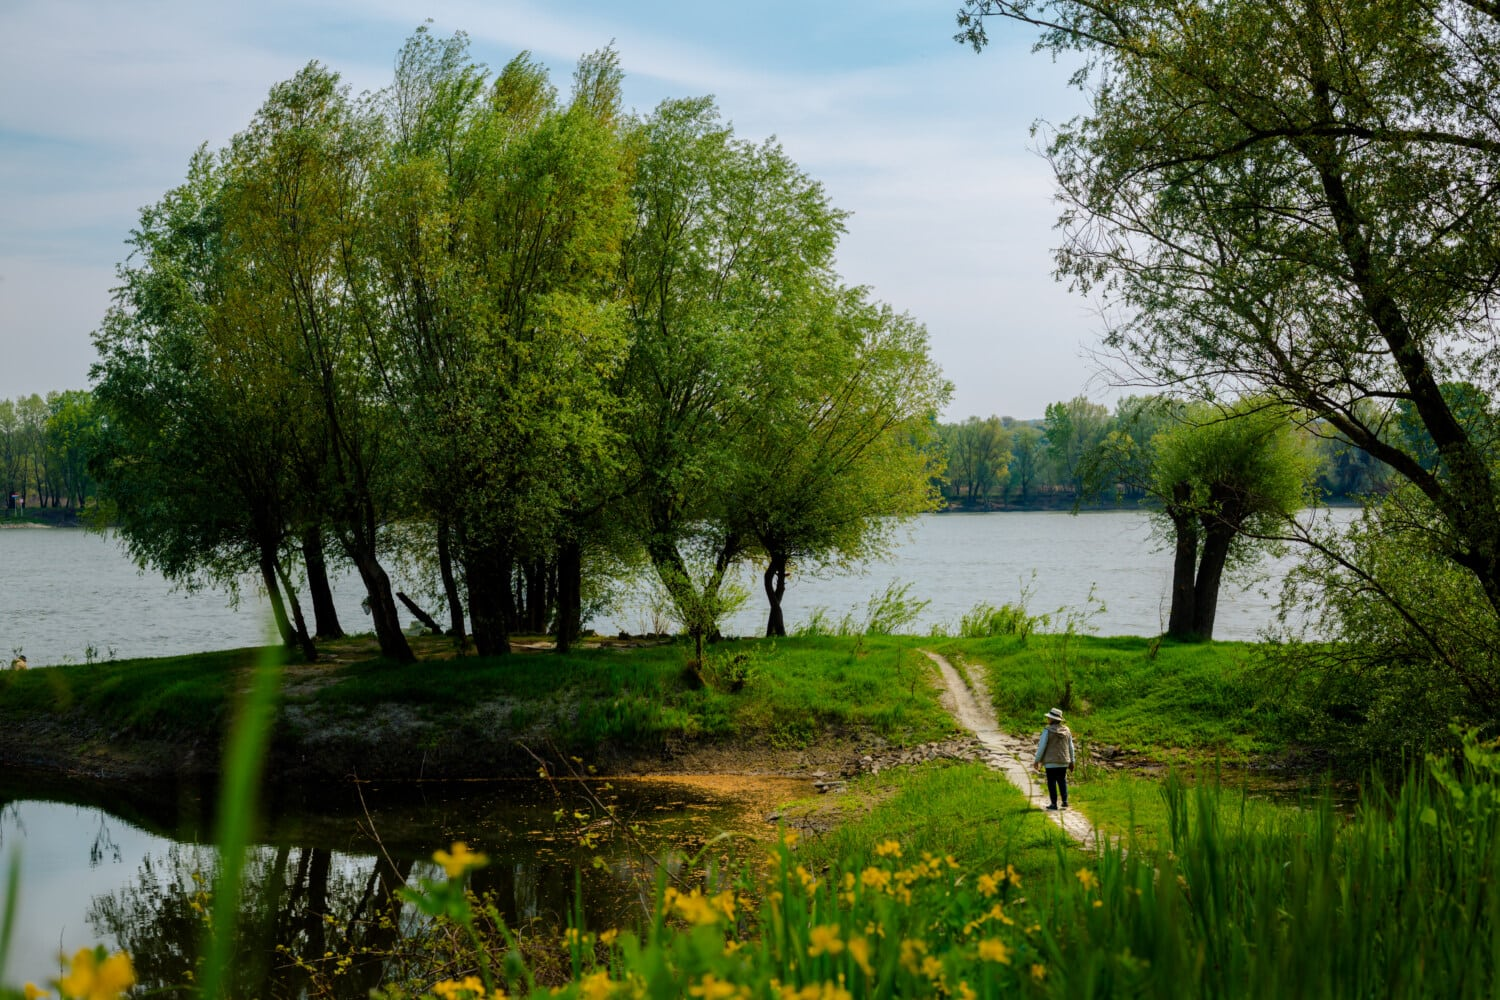 riverbank, spring time, hiker, nature, landscape, fair weather, lake, river, plant, willow